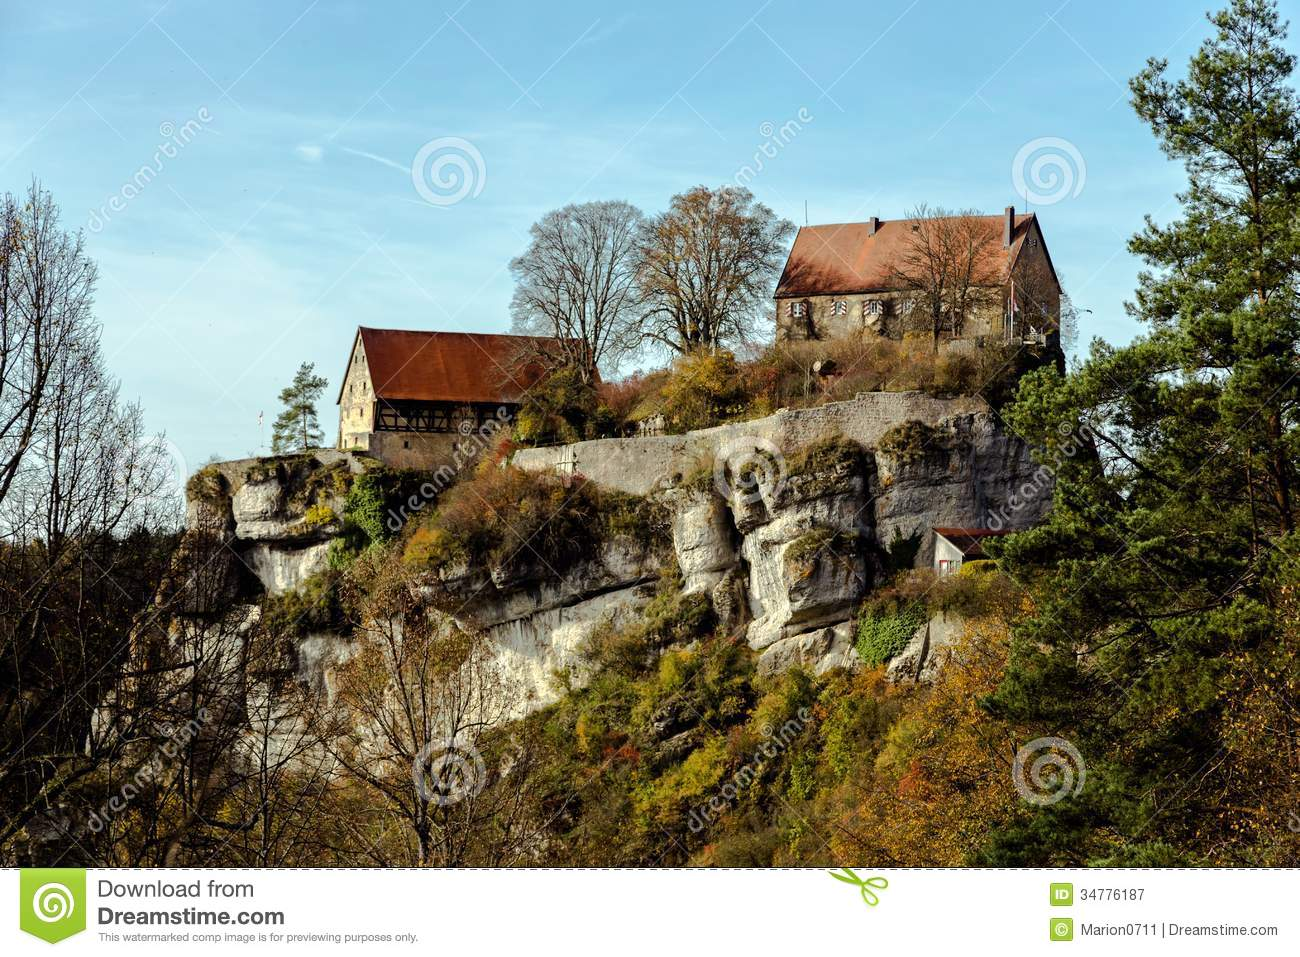 Royalty free stock photography house on the rock image for Cost to build a house in little rock